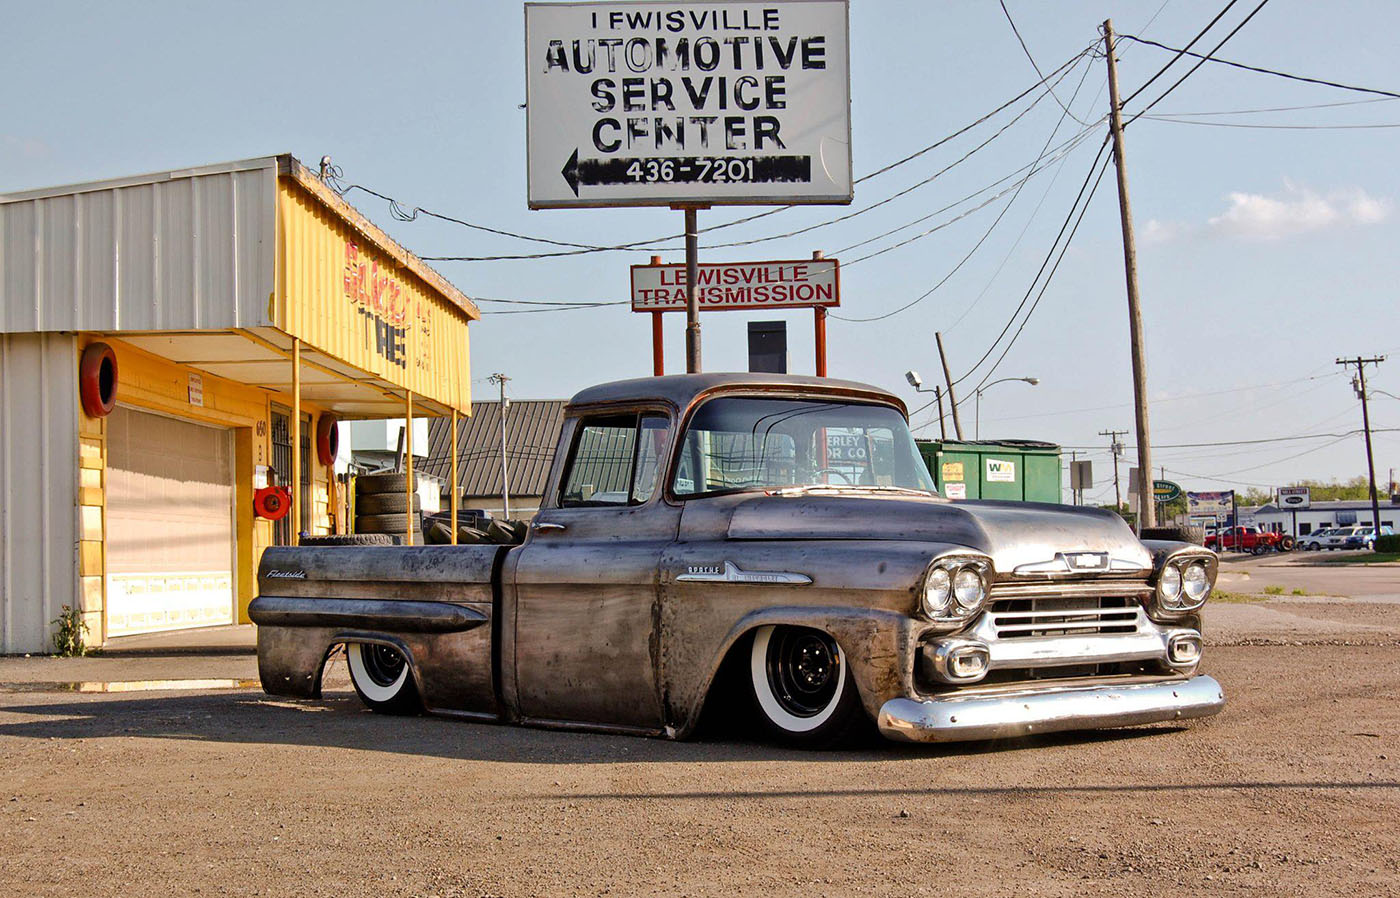 1958 Chevy Truck With A Twin Turbo Ls1 Engine Swap Depot Mazda Wiring Harness This Apache Was Built By Hales Speed Shop In Lewisville Texas It Features An Upgraded 57 L Capable Of Handling Two 60 Mm